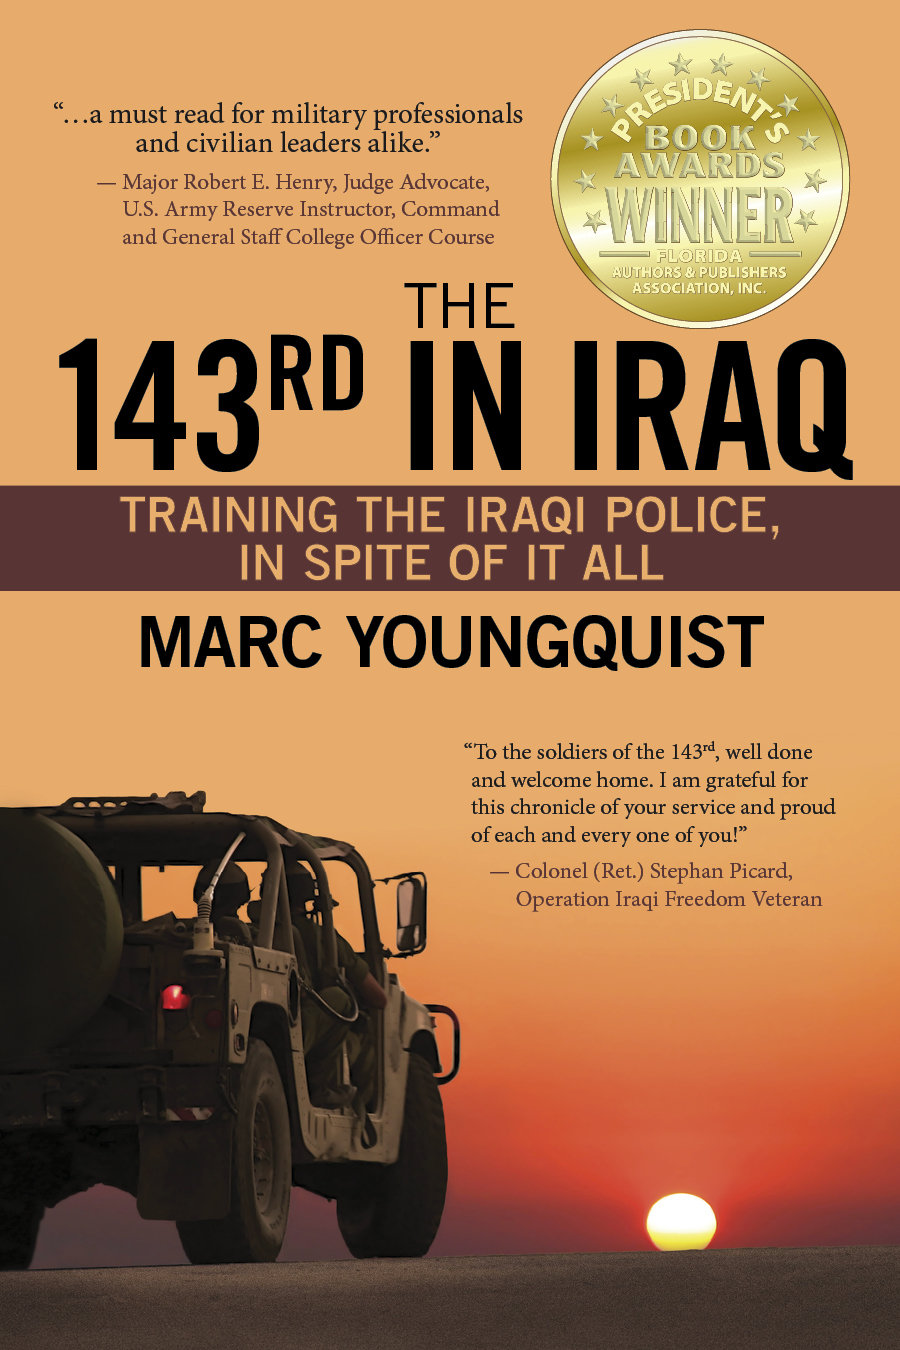 The 143rd in Iraq: Training the Iraqi Police, In Spite of It All (Kindle)